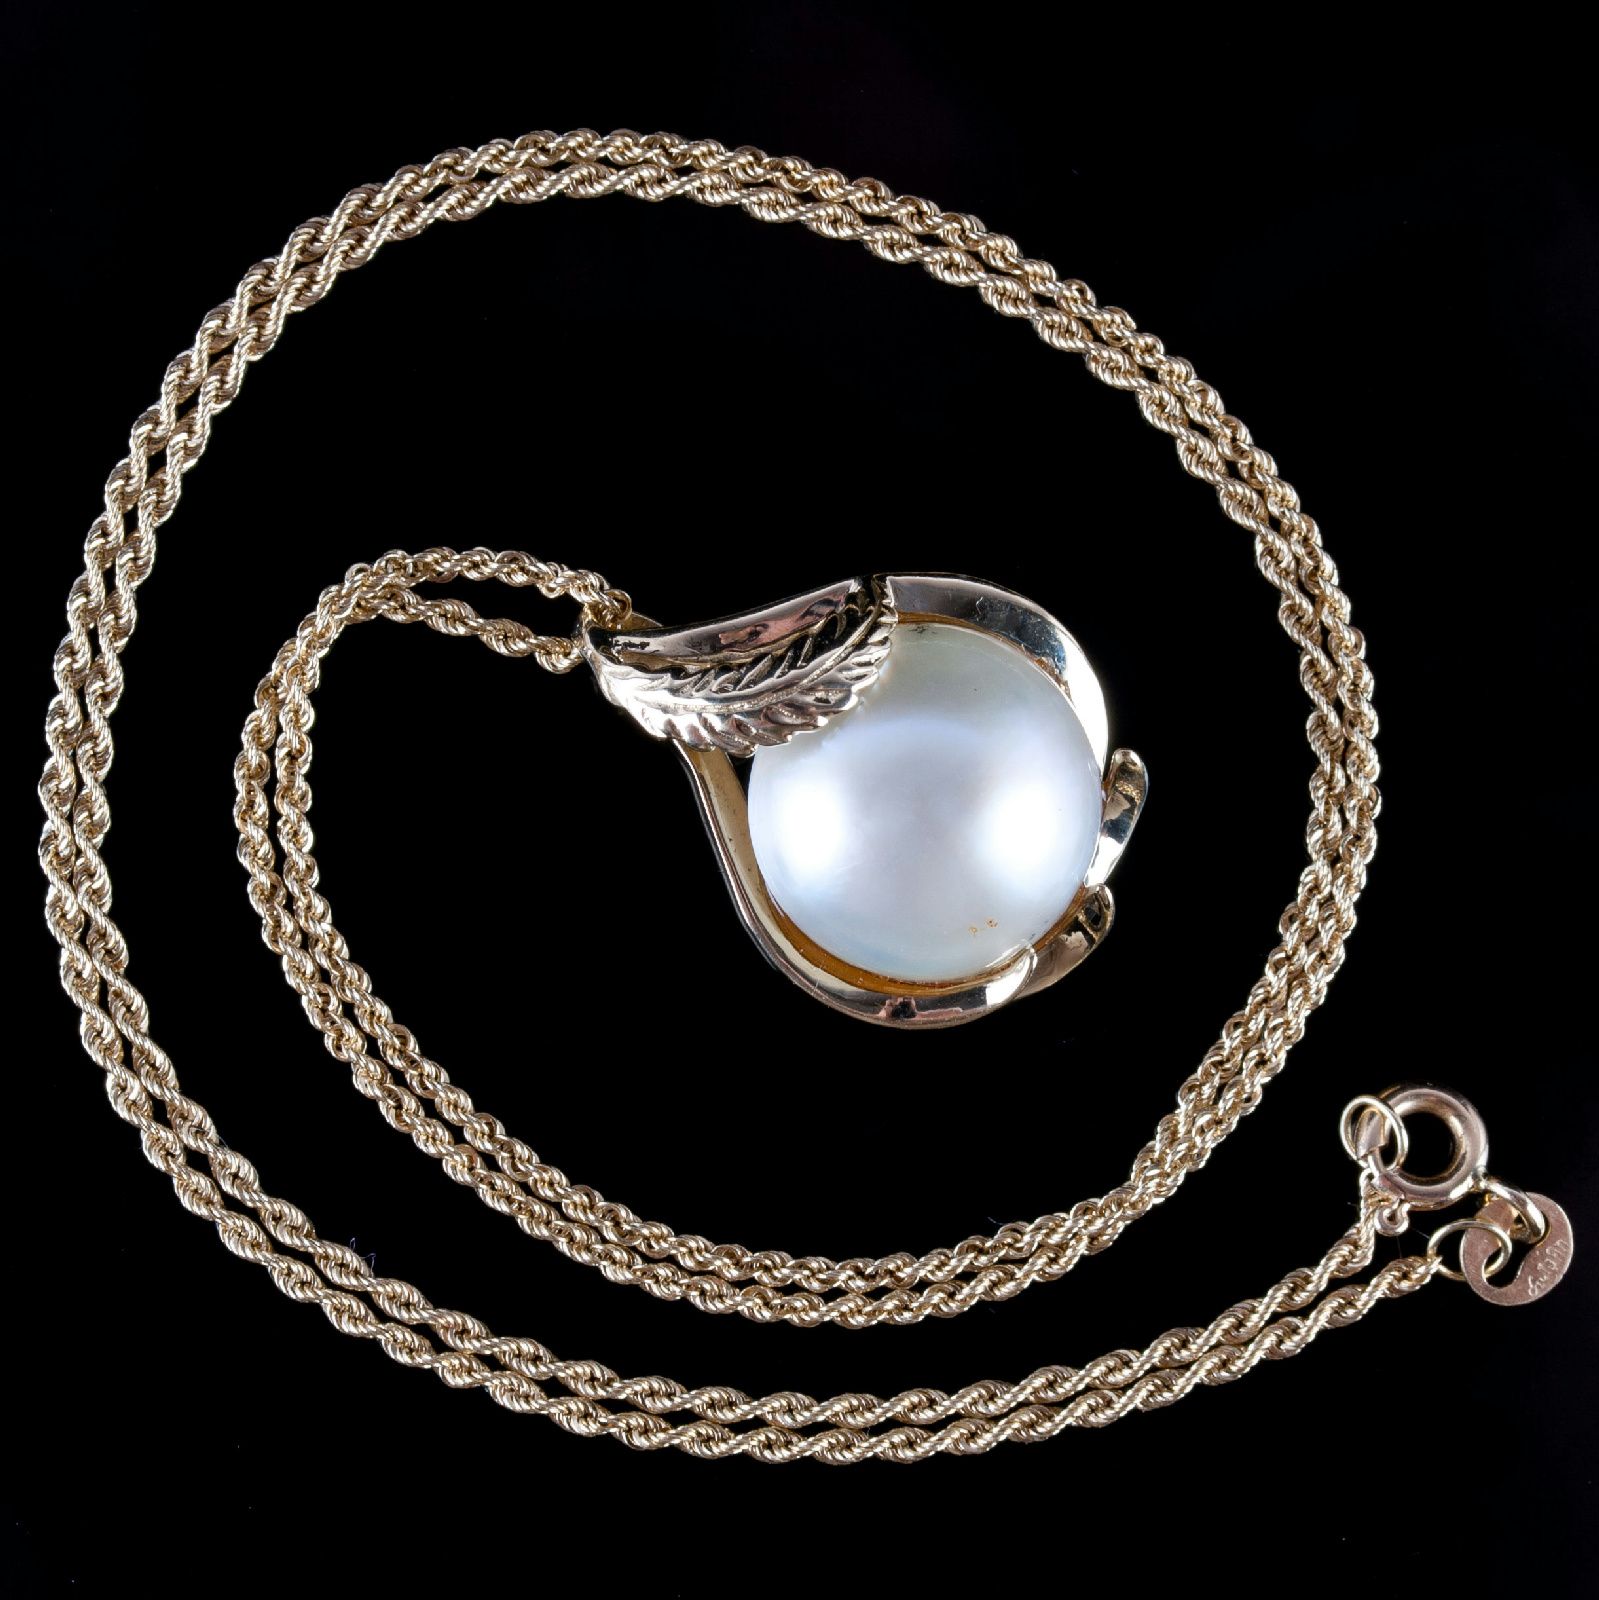 Mabe Pearl Necklace: 14k Yellow Gold Round Cabochon Cut Cultured Mabe Pearl